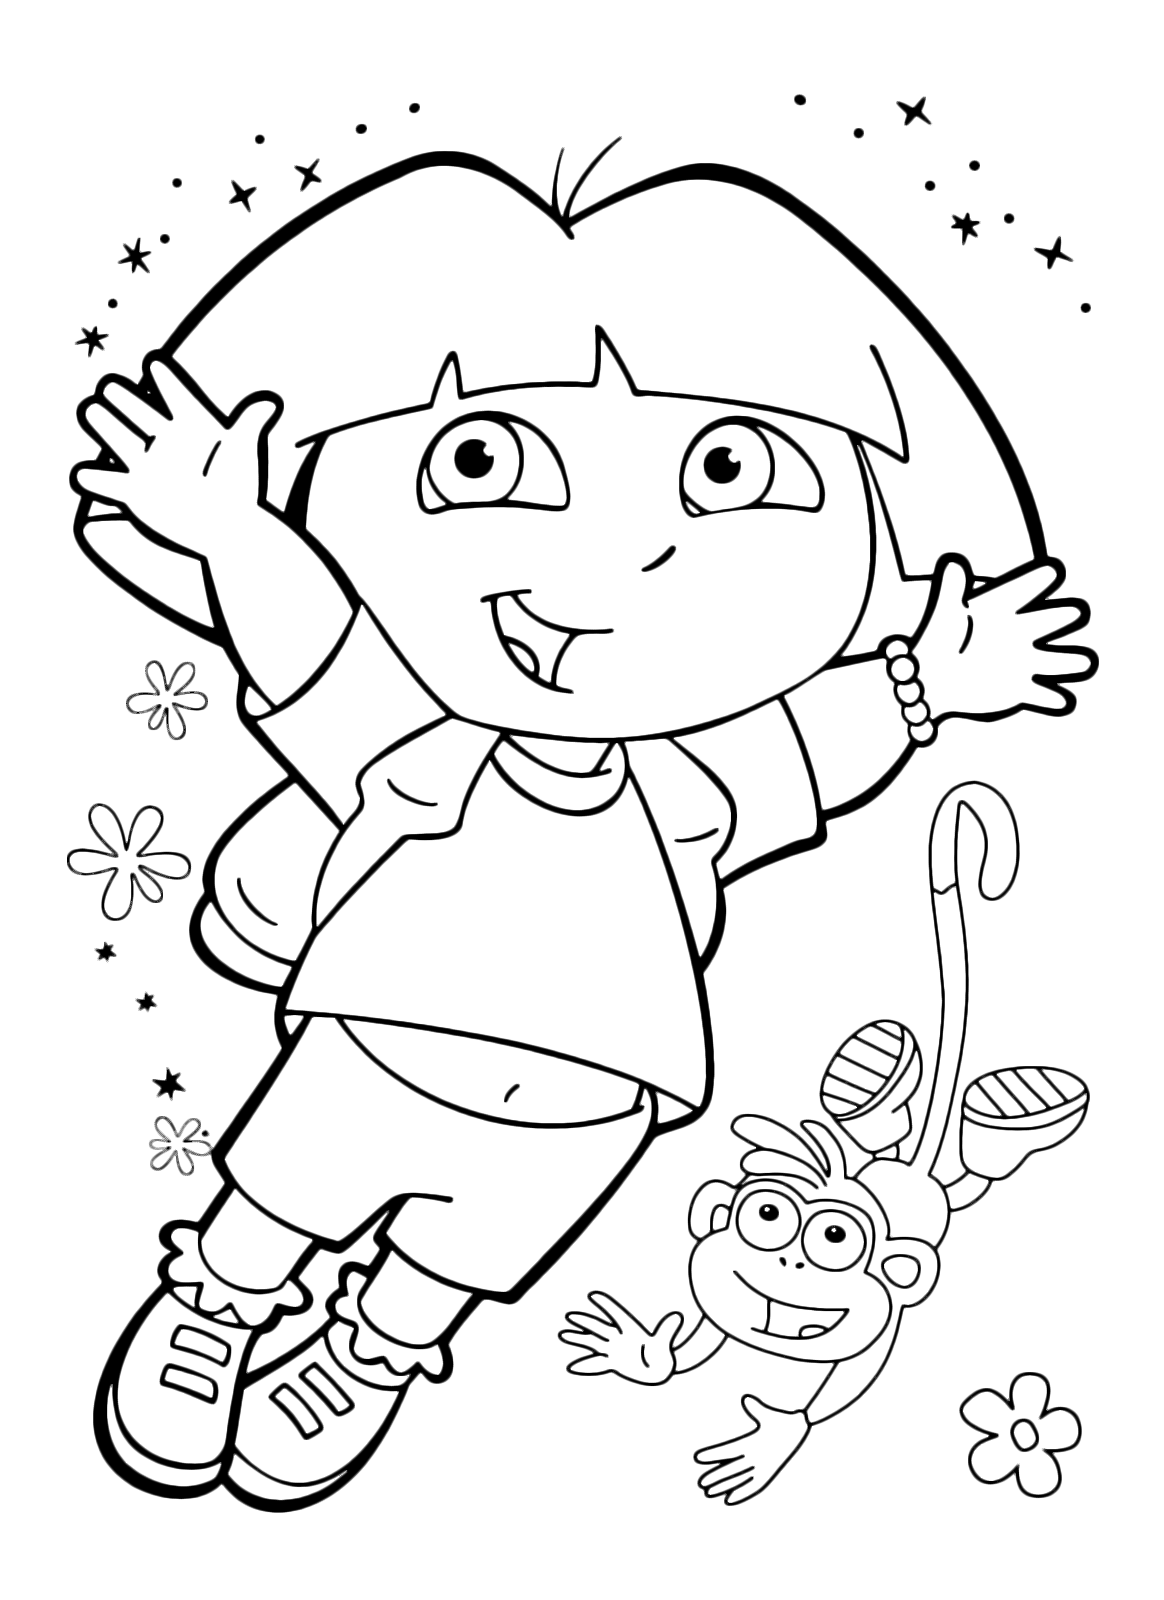 Dora the Explorer - Dora jumps with the Boots monkey